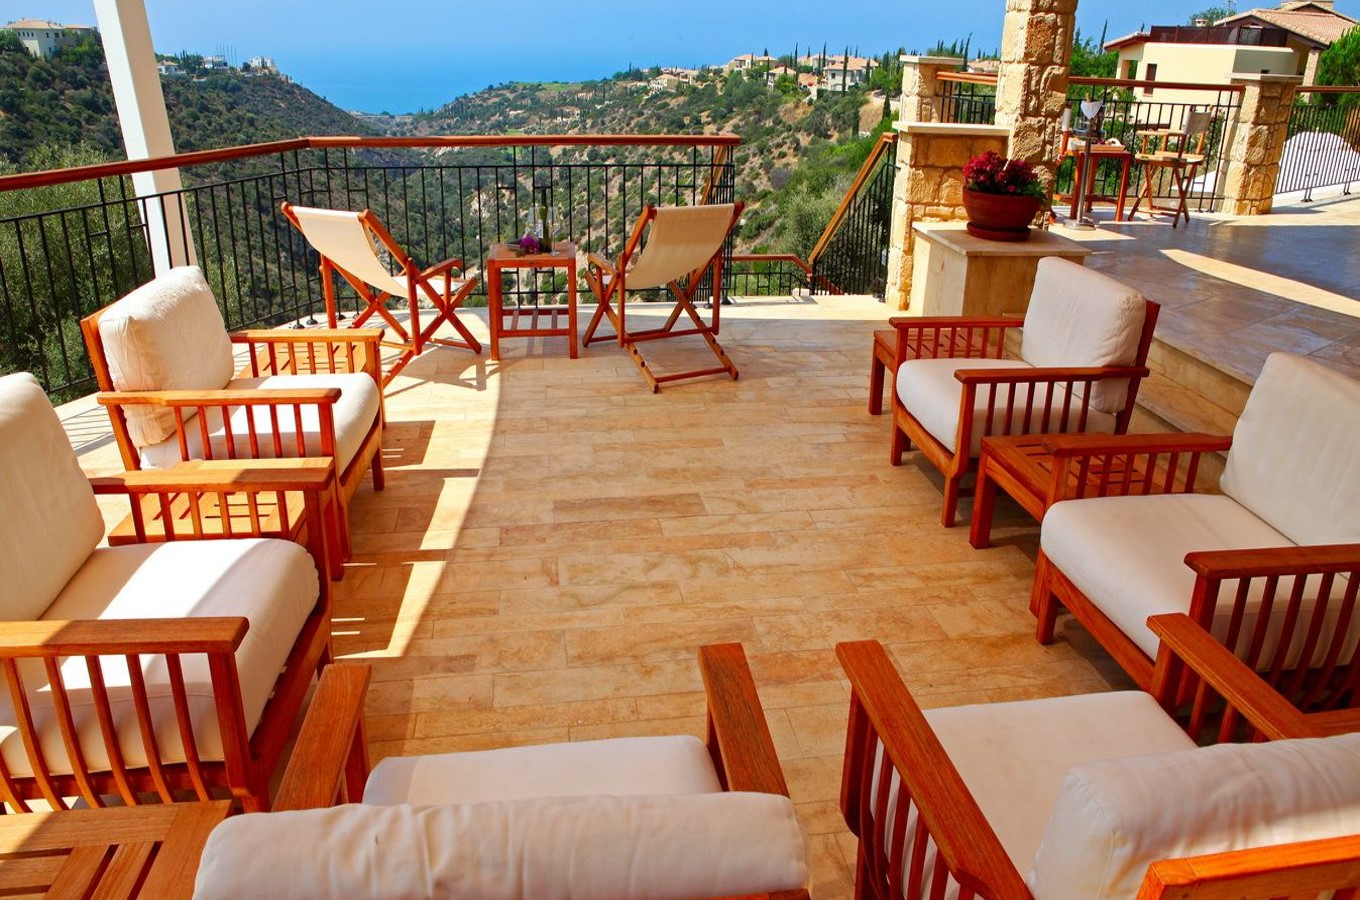 Villa with pool for rent on the island of Cyprus